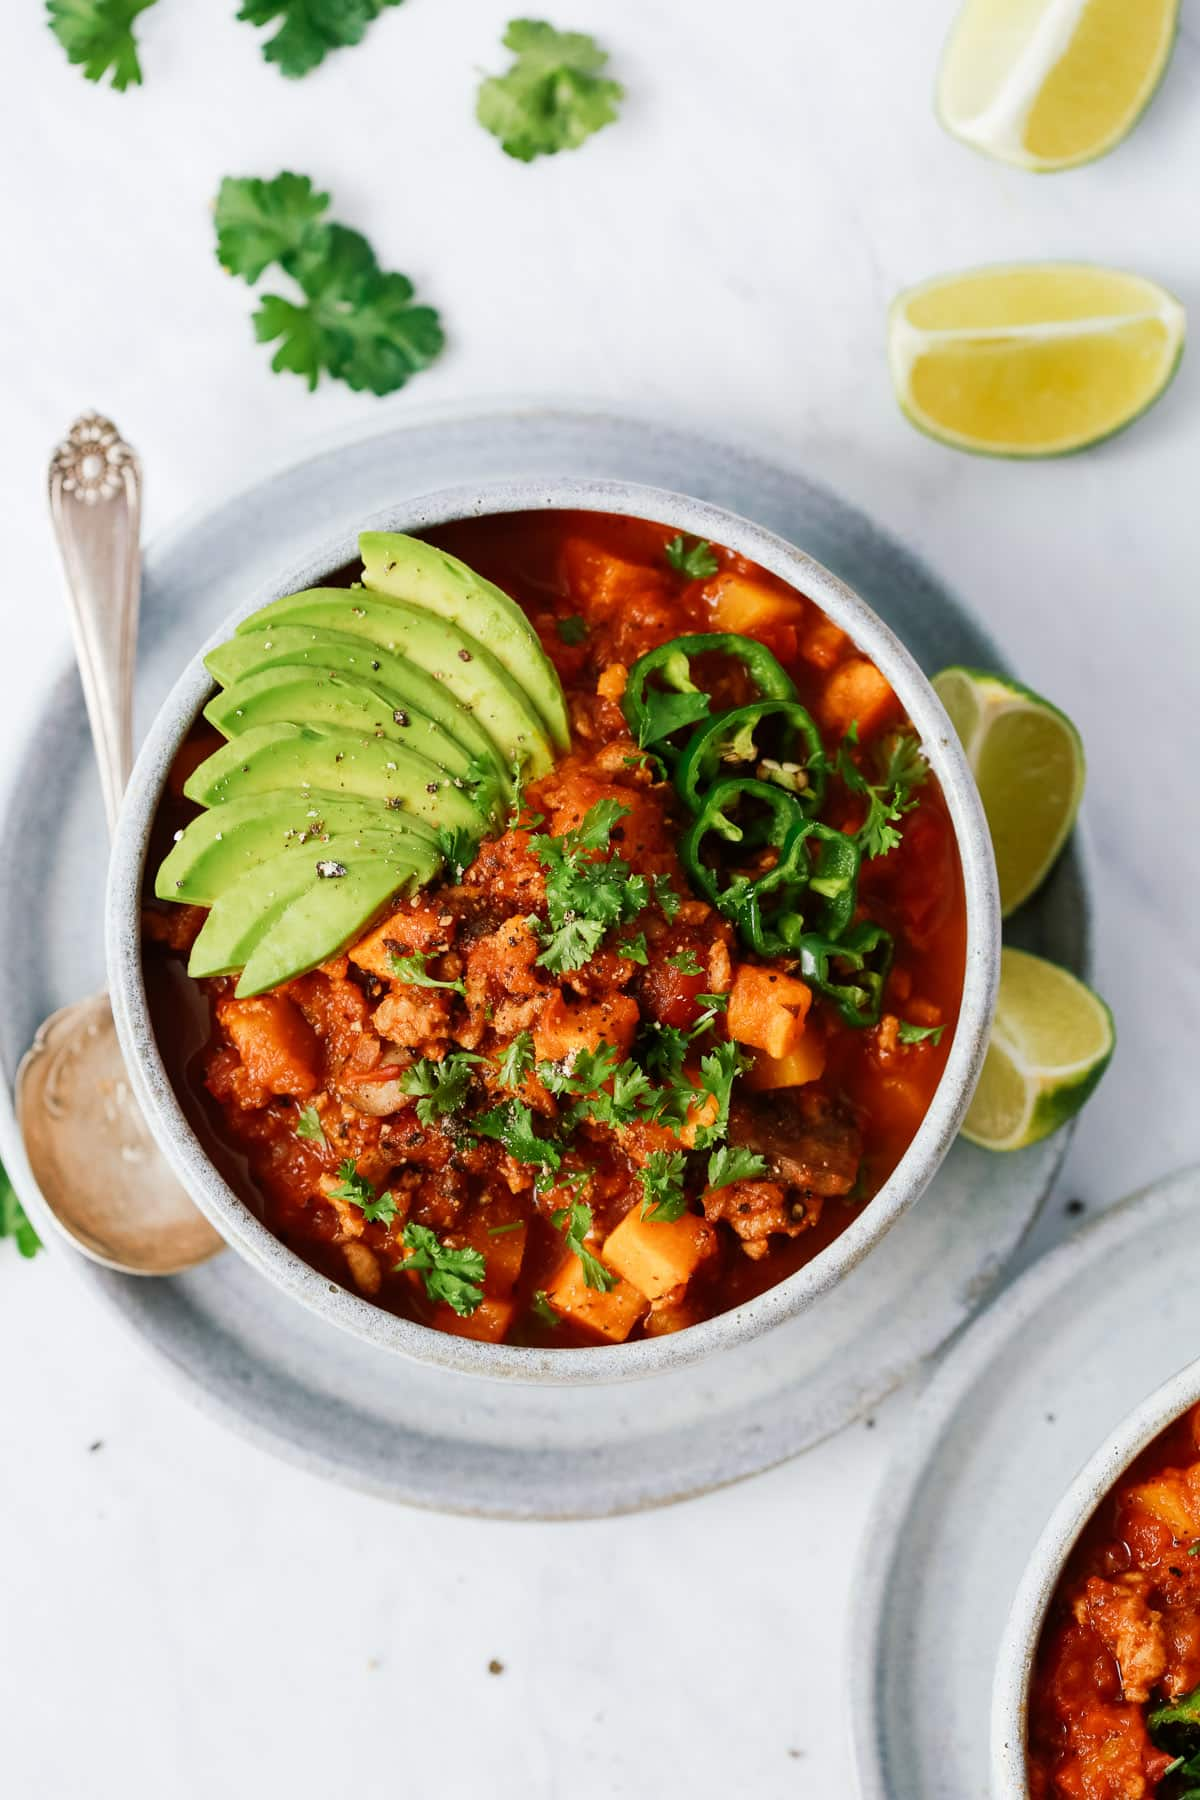 bowl of Whole30 compliant sweet potato chili